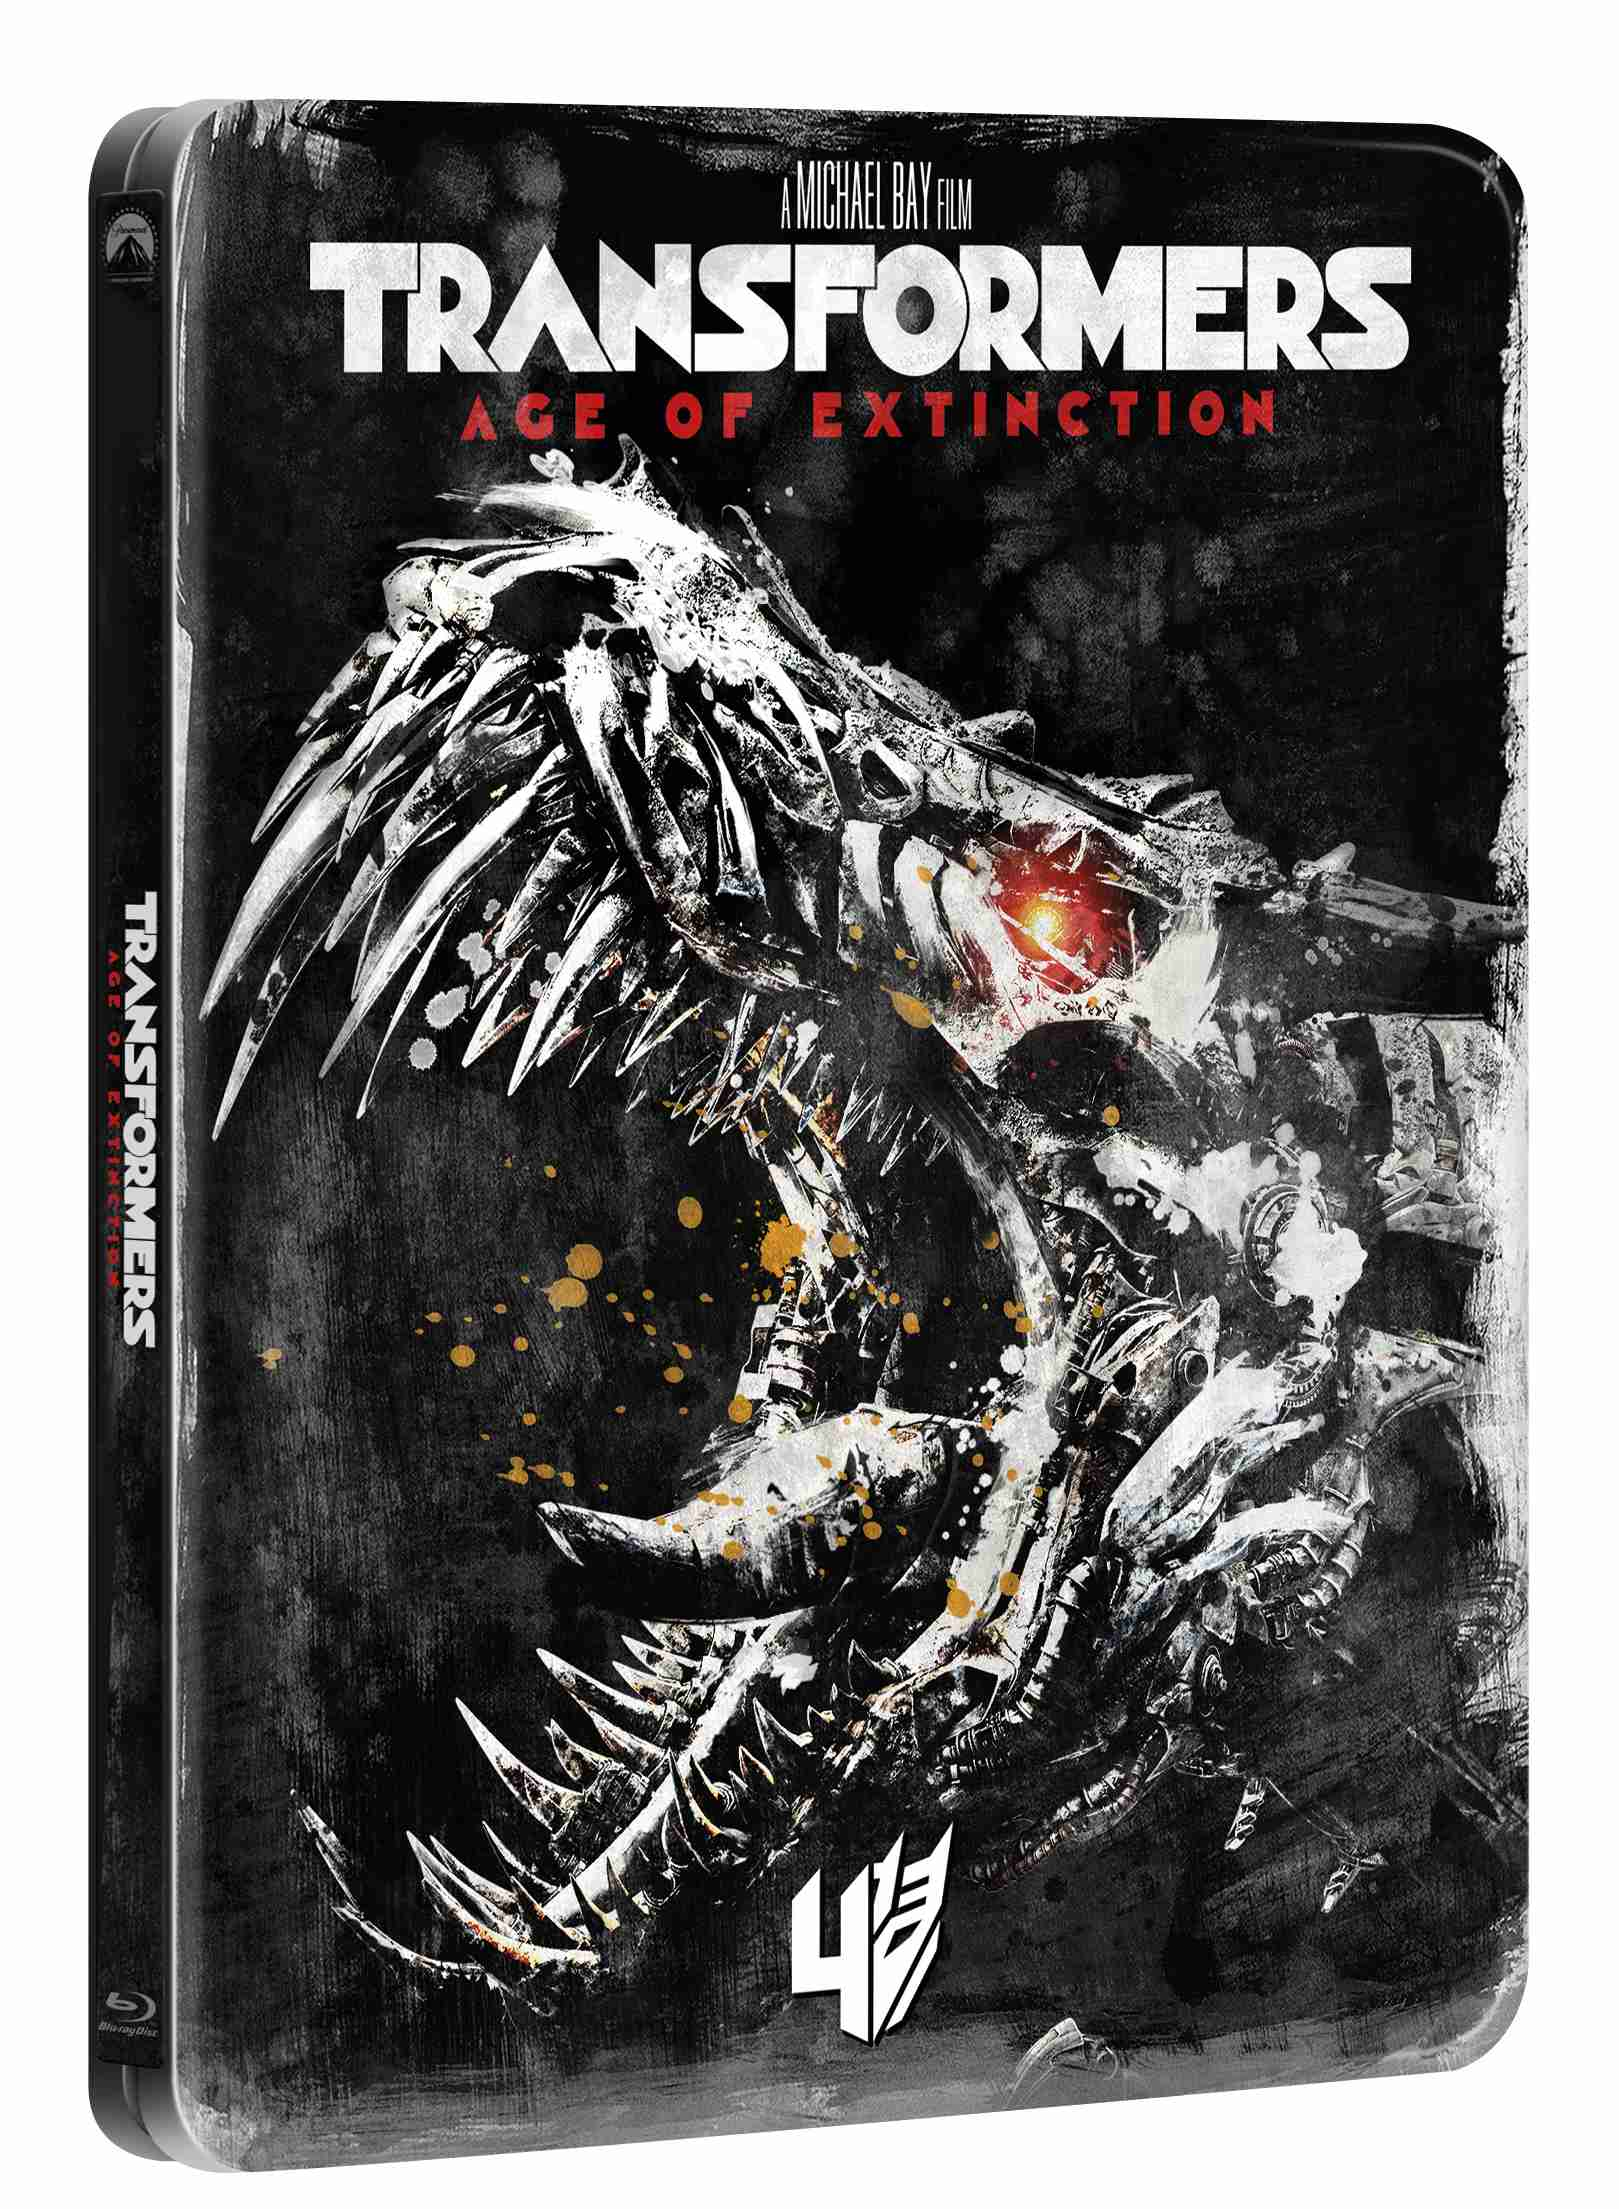 TRANSFORMERS: ZÁNIK (Edice 10 let) - Blu-ray STEELBOOK